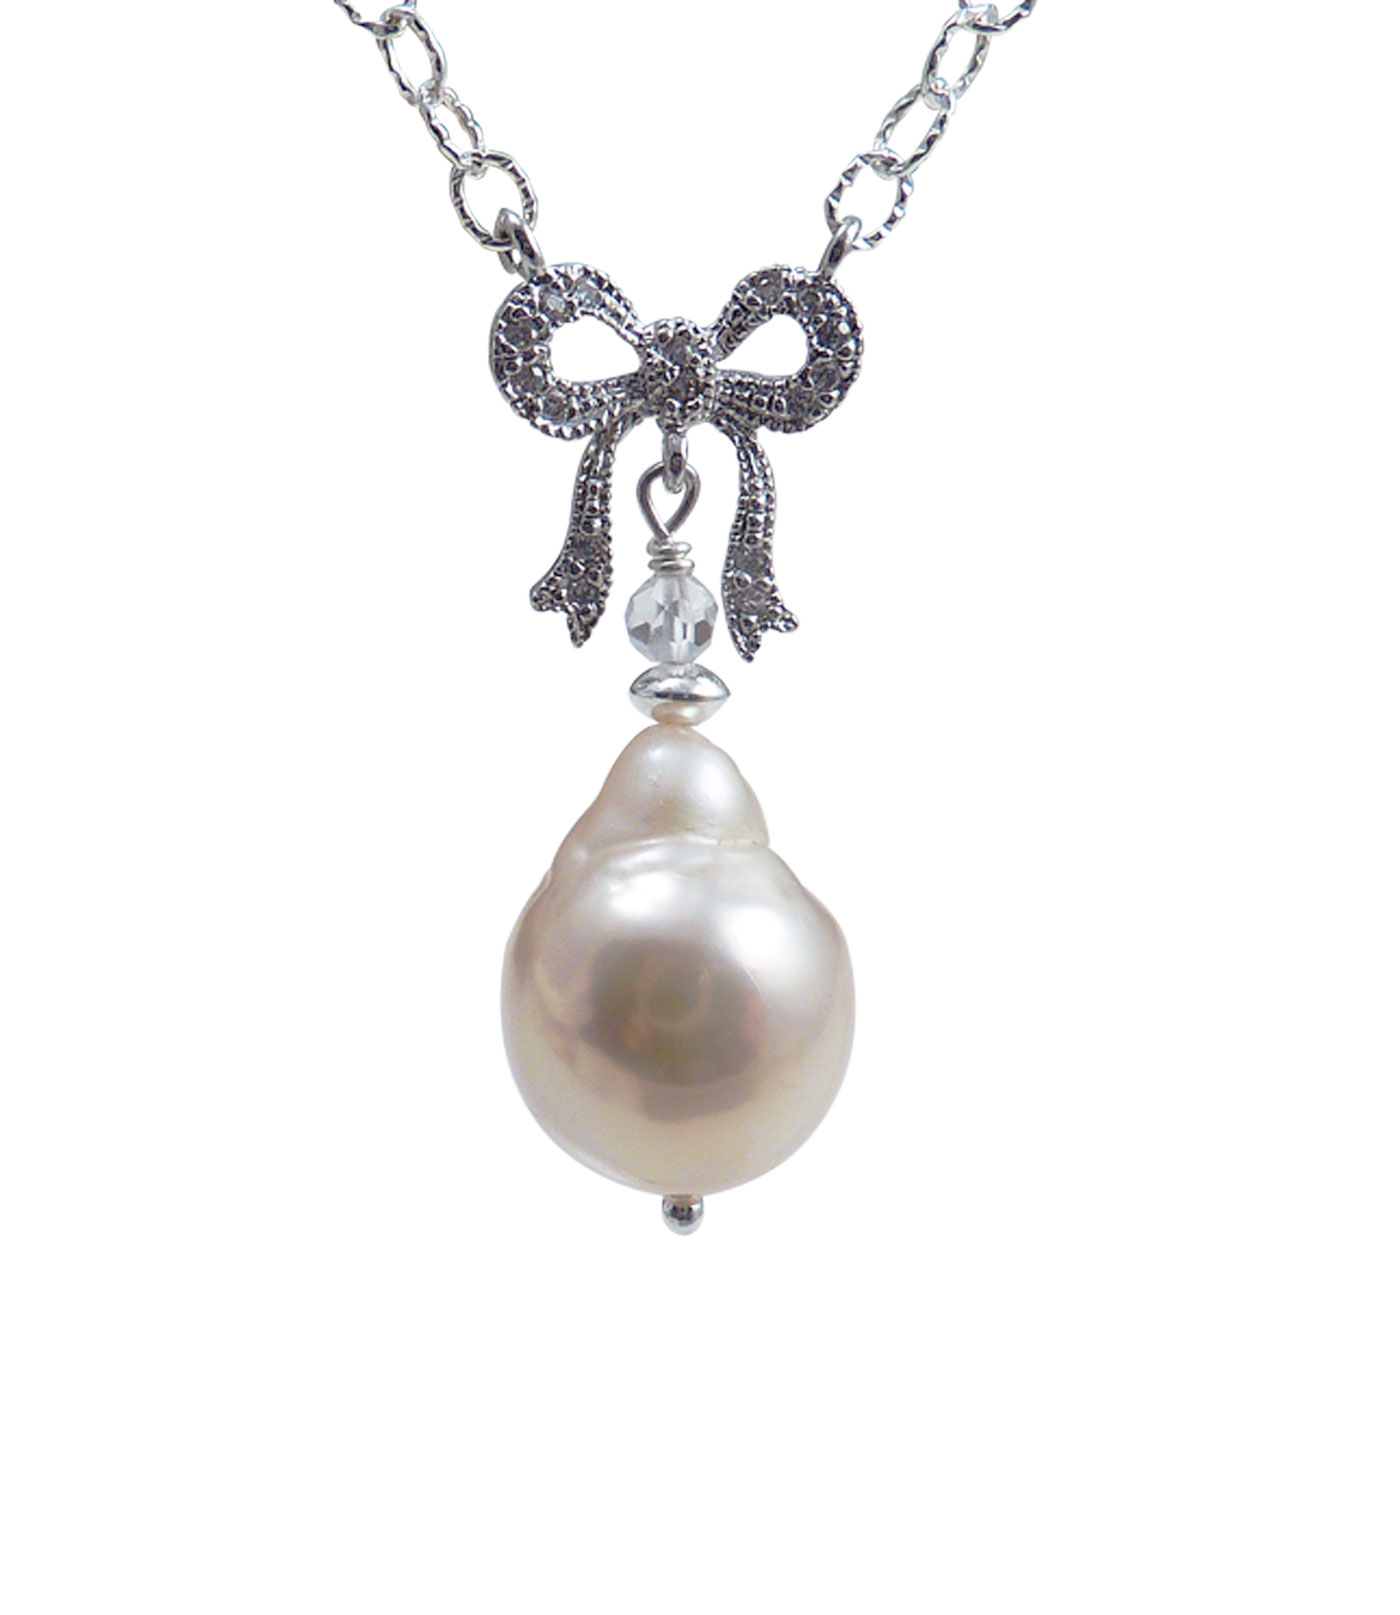 pink create an necklace bella set pendant pearl earring and account sterling nesr silver